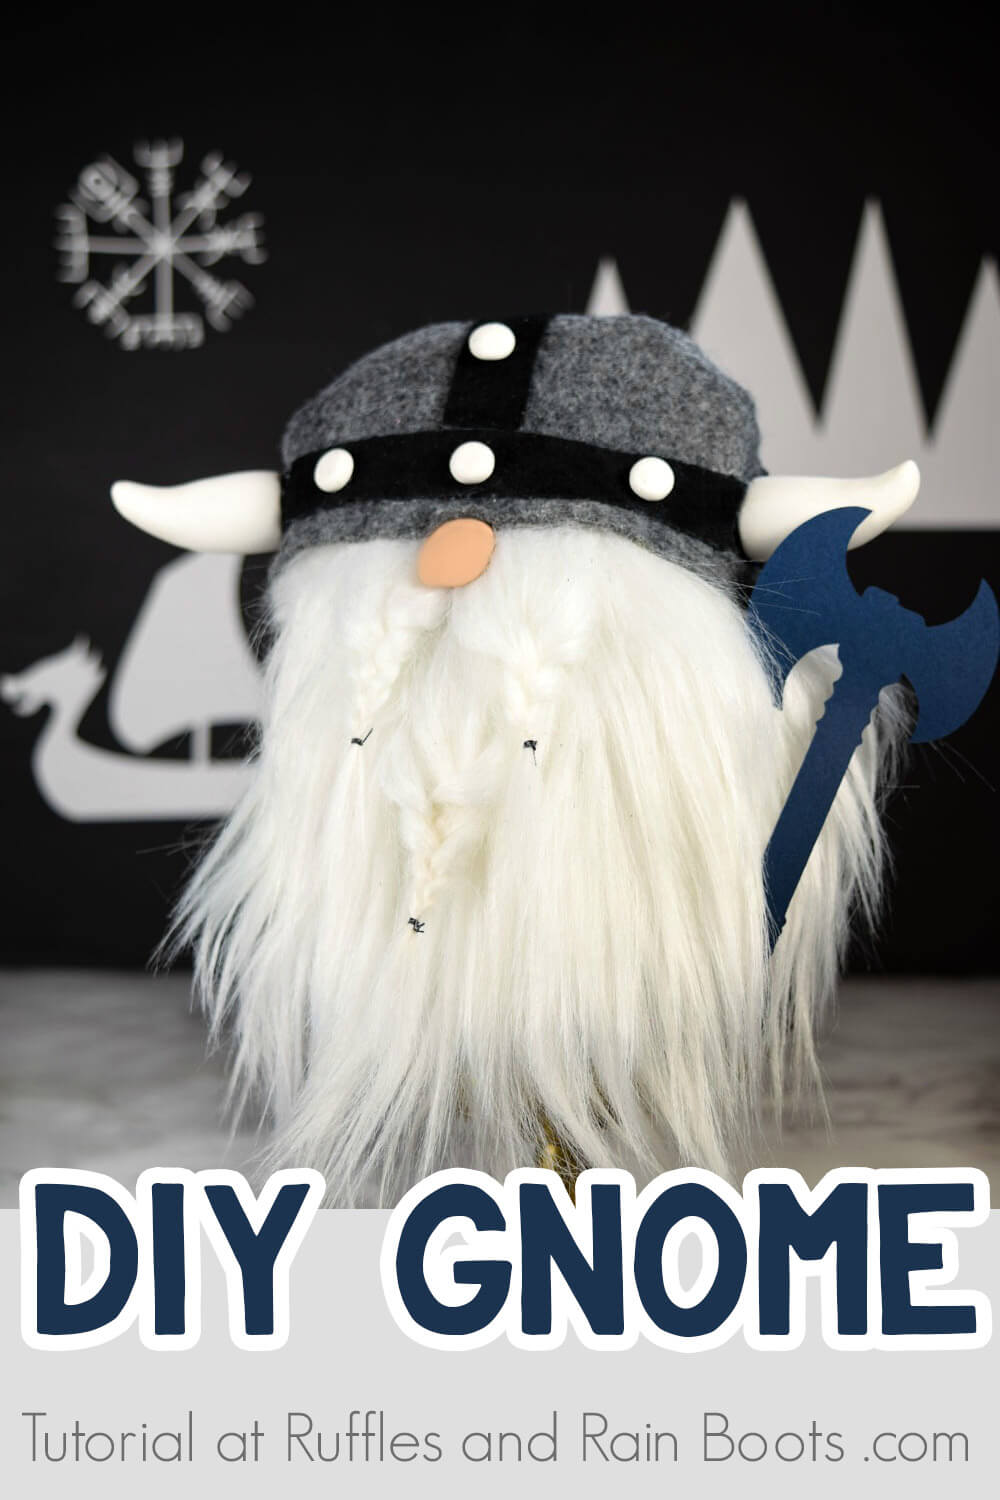 Viking gnome on dark background with text which reads DIY gnome